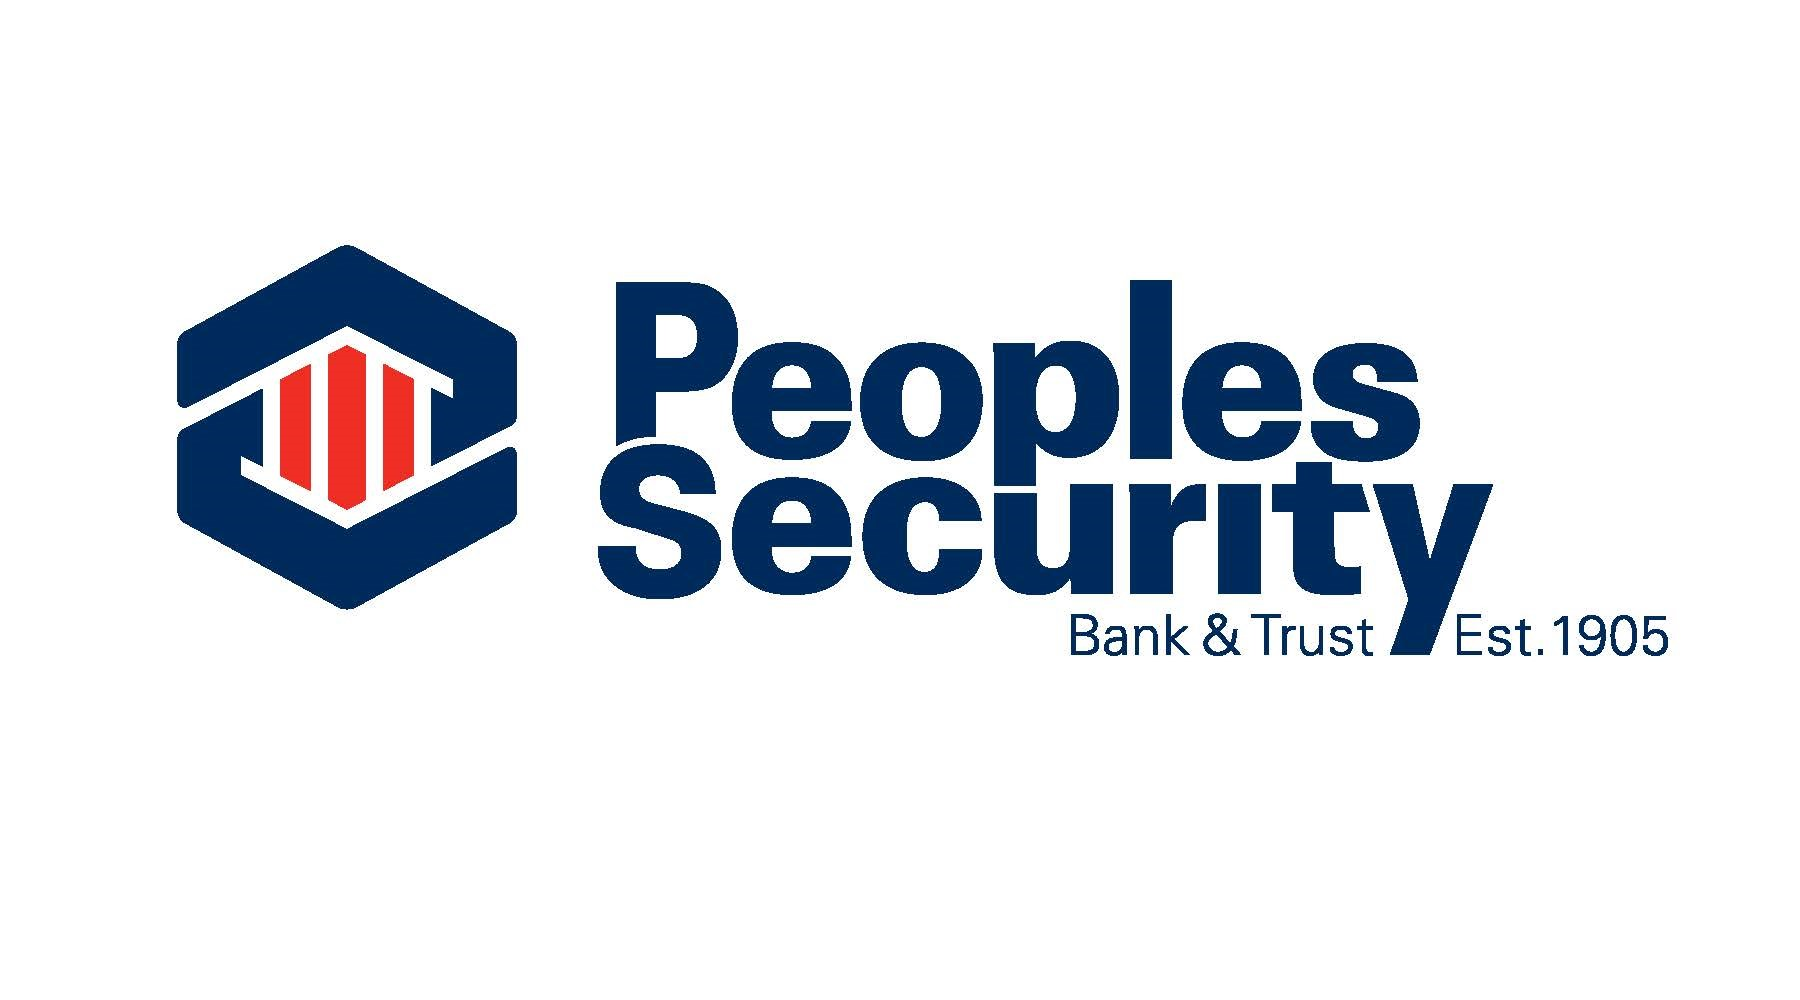 People's Security Bank & Trust